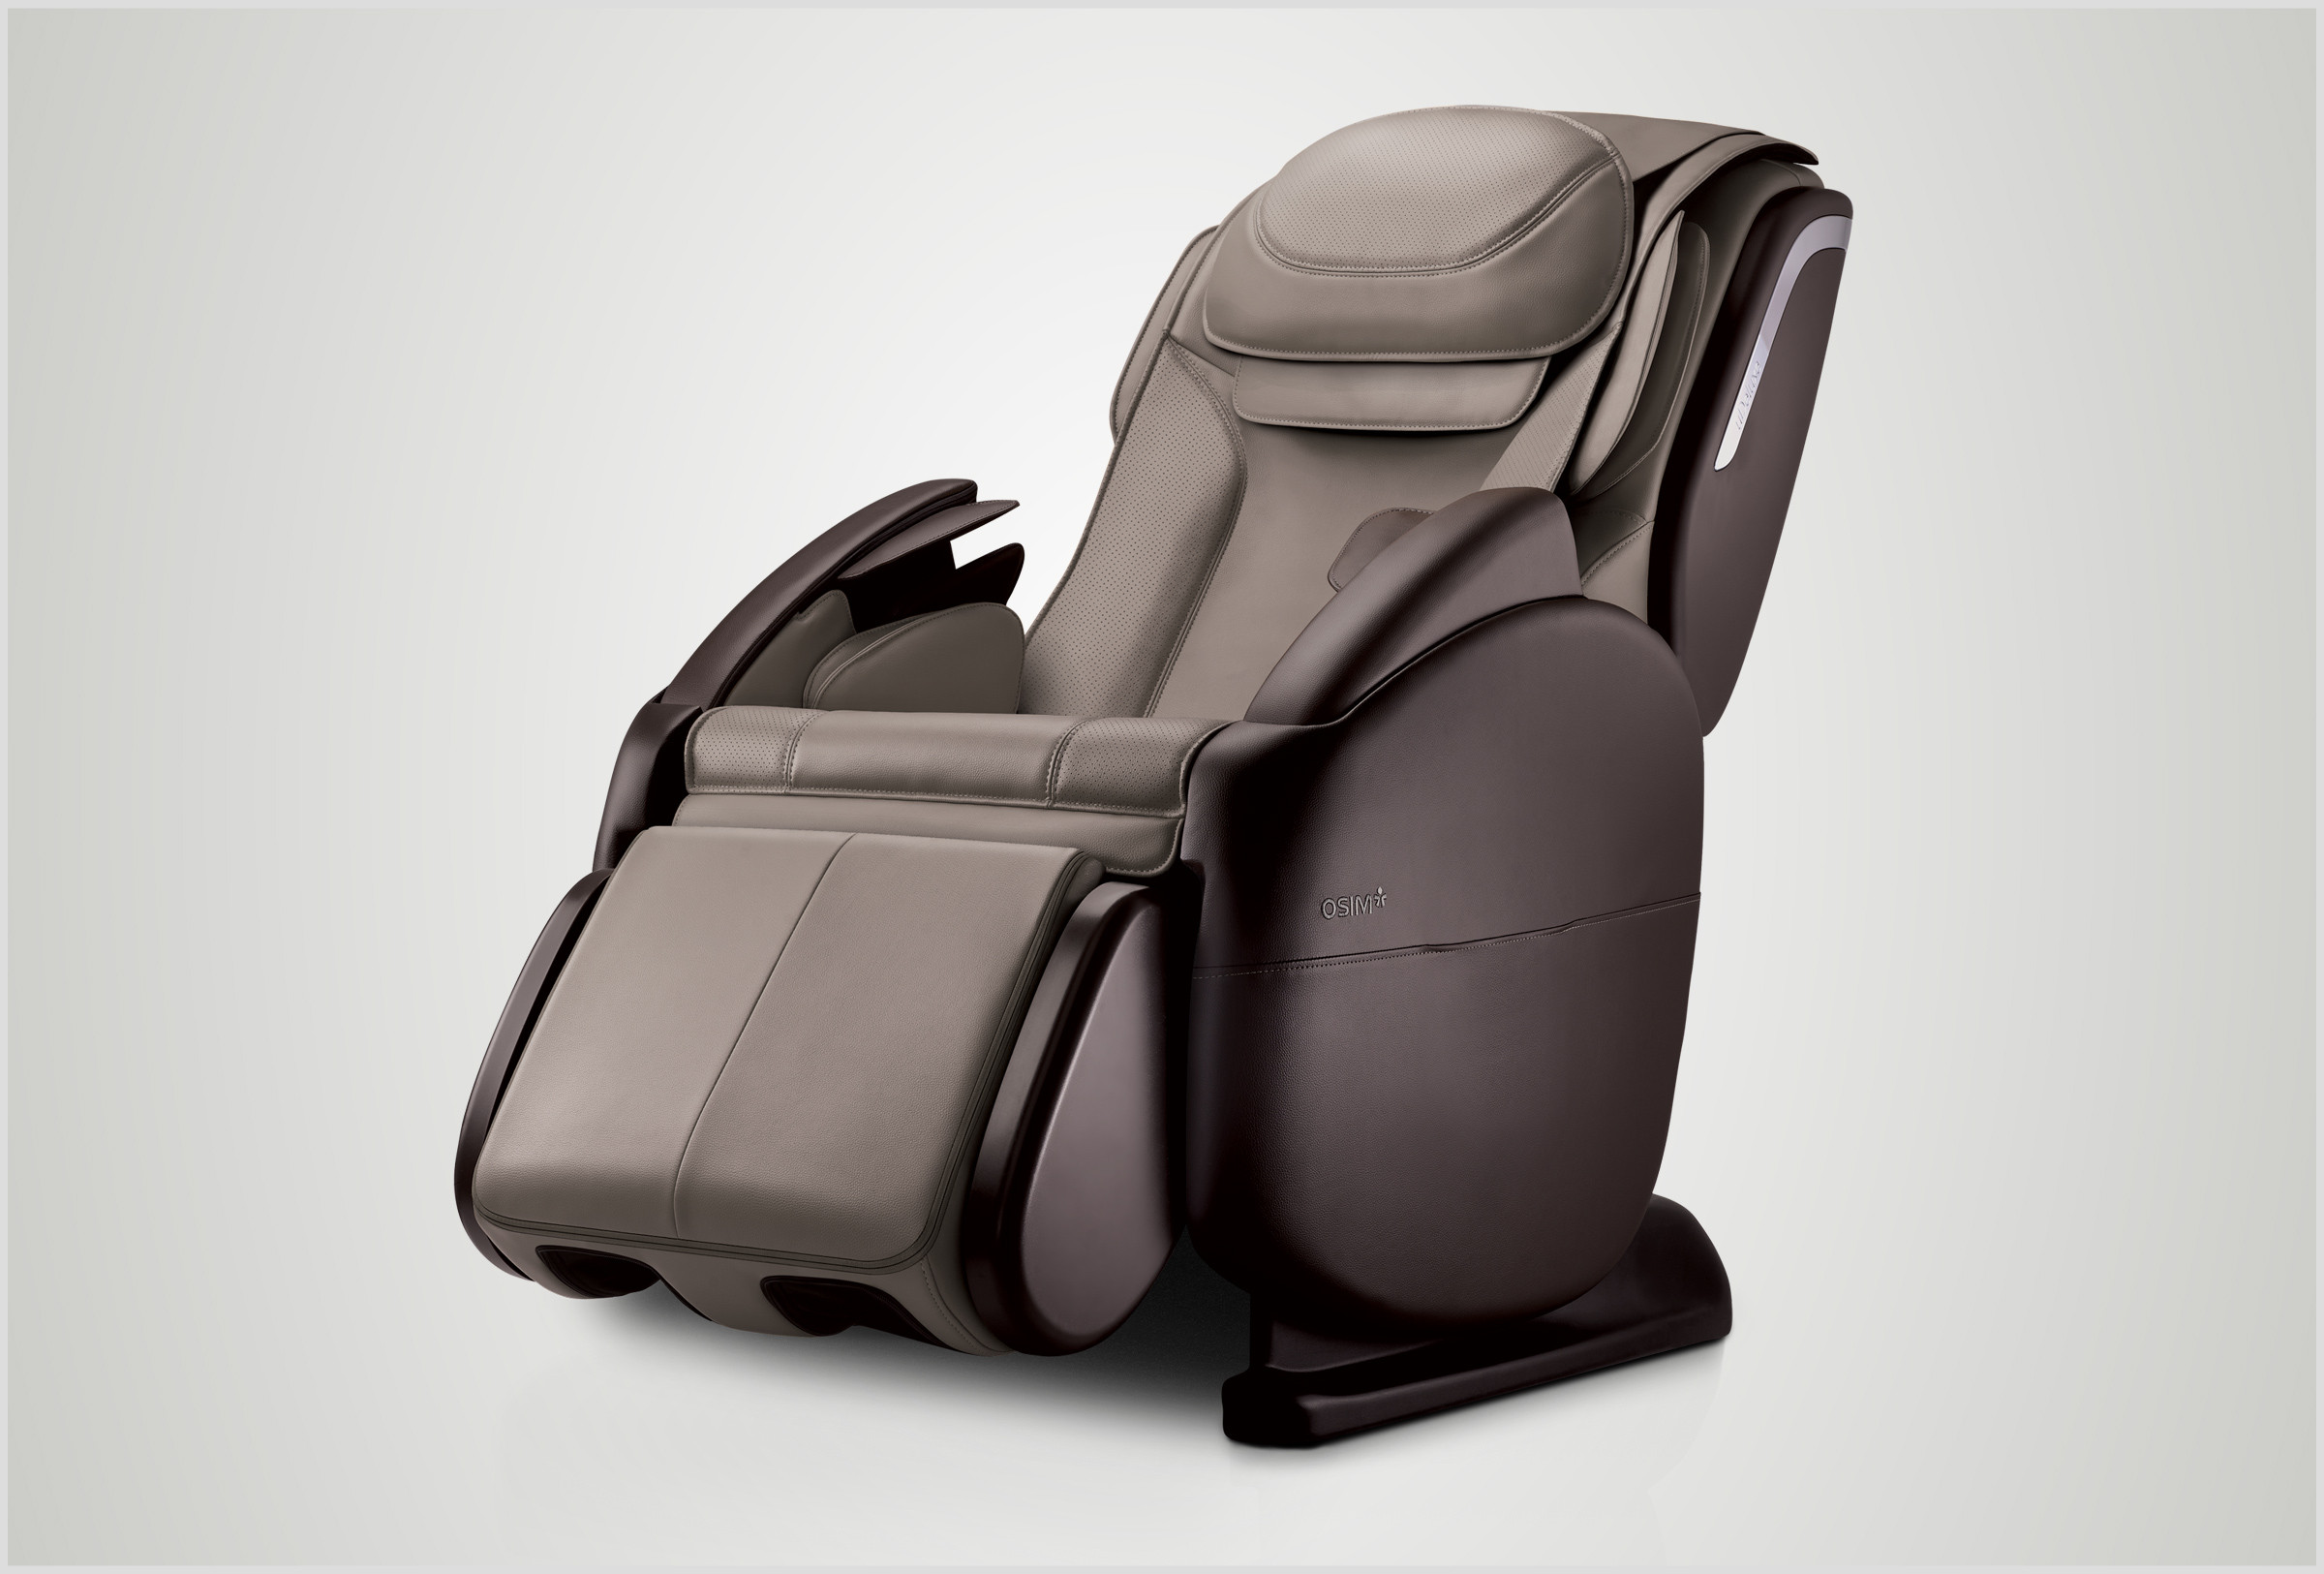 Buy Massage Chairs Online in Australia, Compare Prices of Products from 24 Stores. Lowest Price is. Save with indianheadprimefavor.tk!